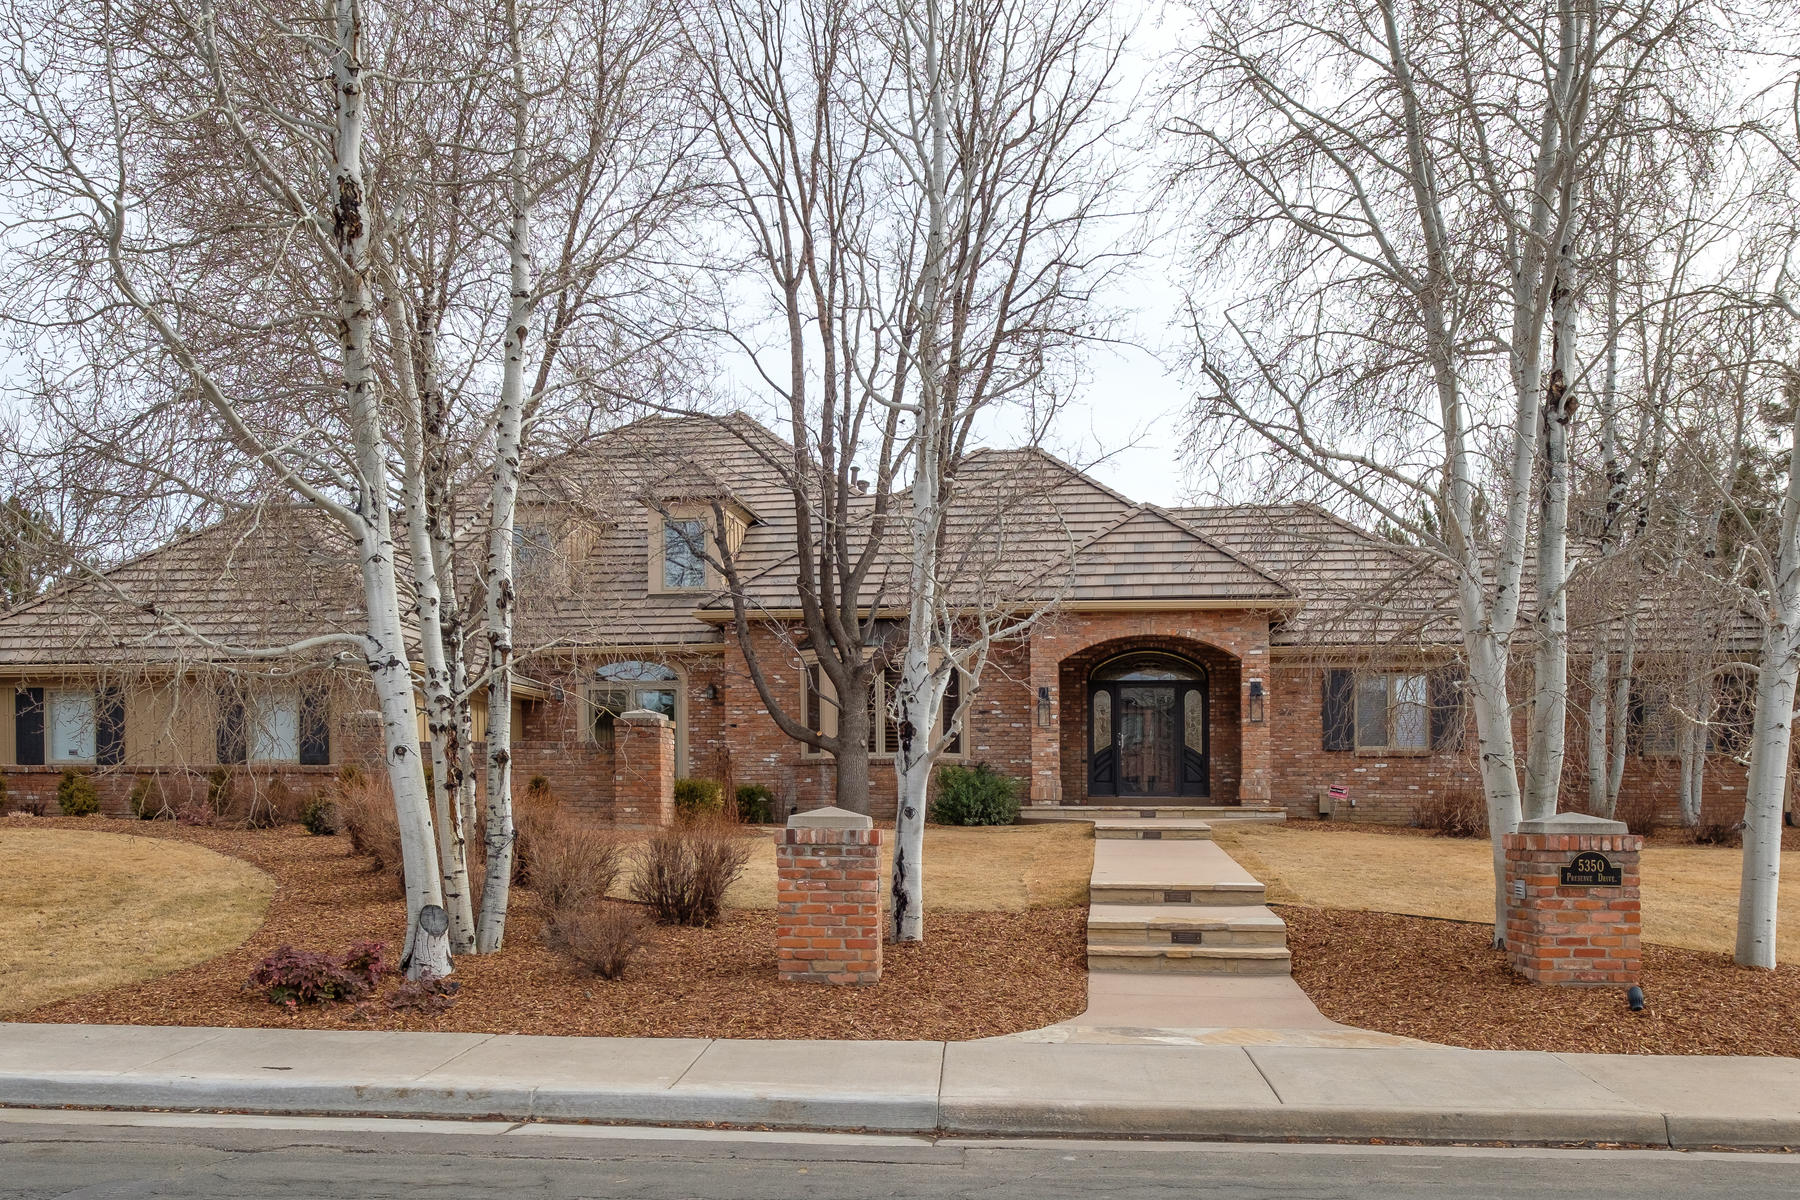 Single Family Home for Active at 5350 Preserve Drive 5350 Preserve Drive Greenwood Village, Colorado 80121 United States